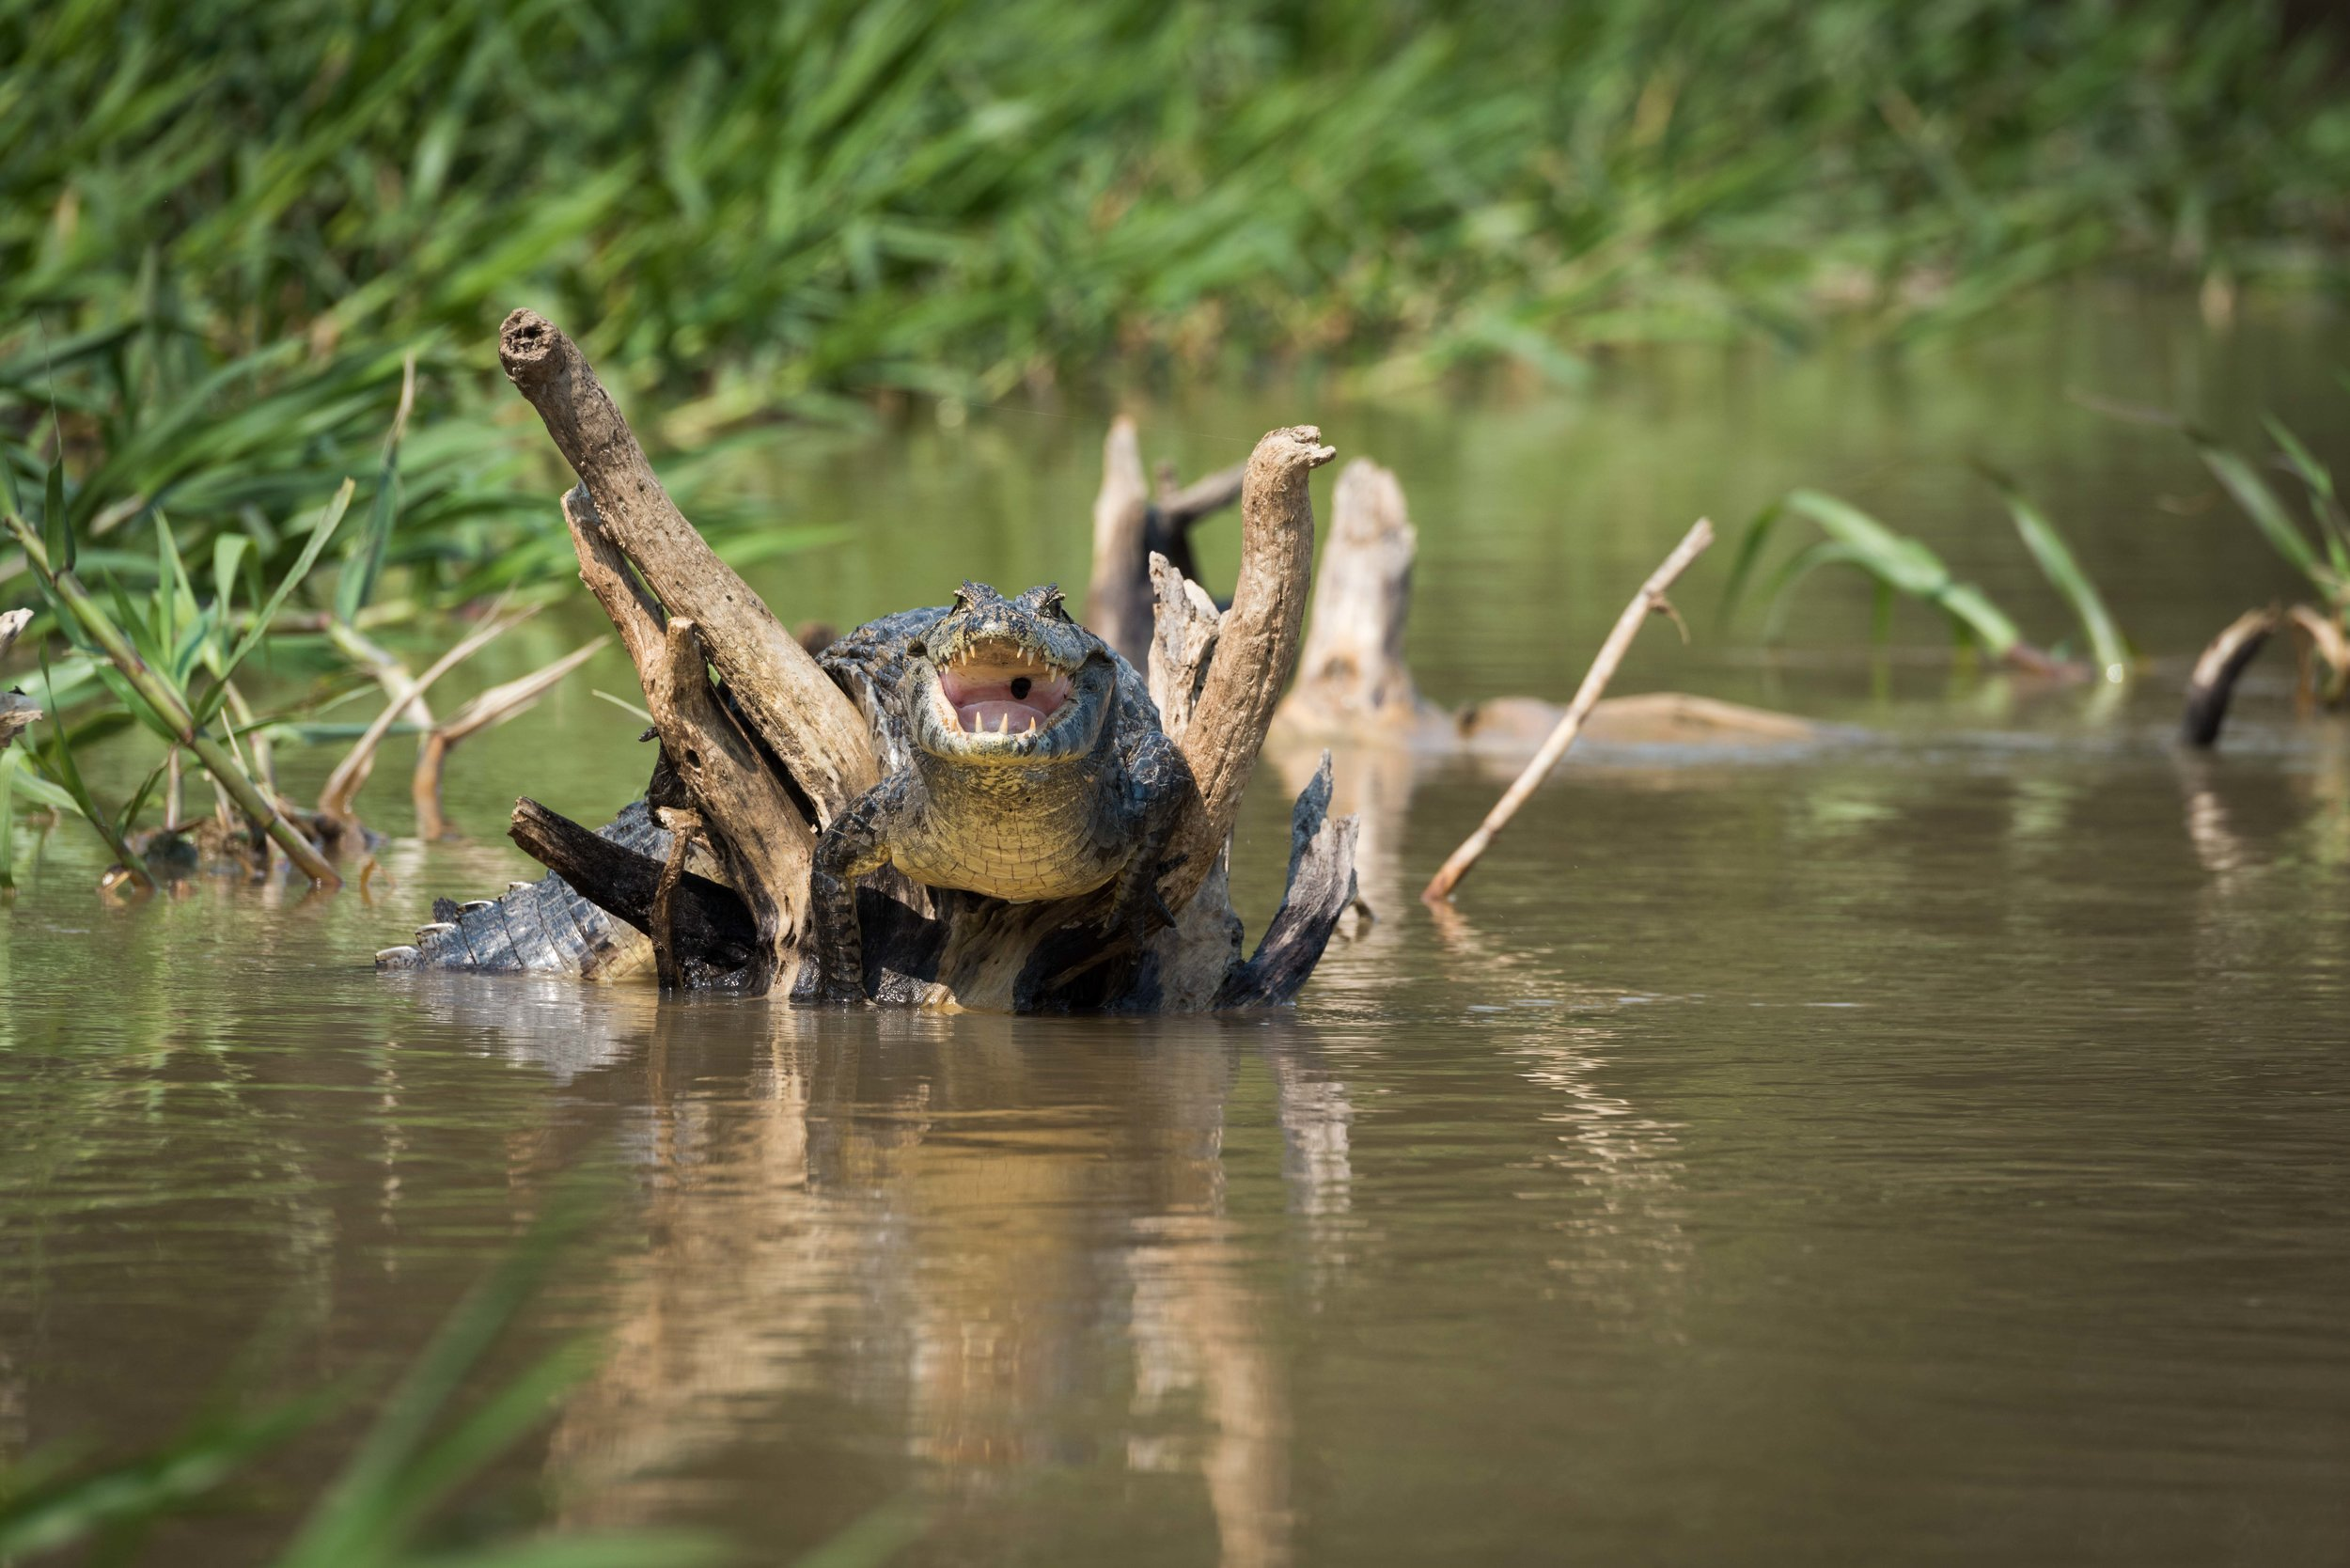 Yacare caiman on dead branches in river